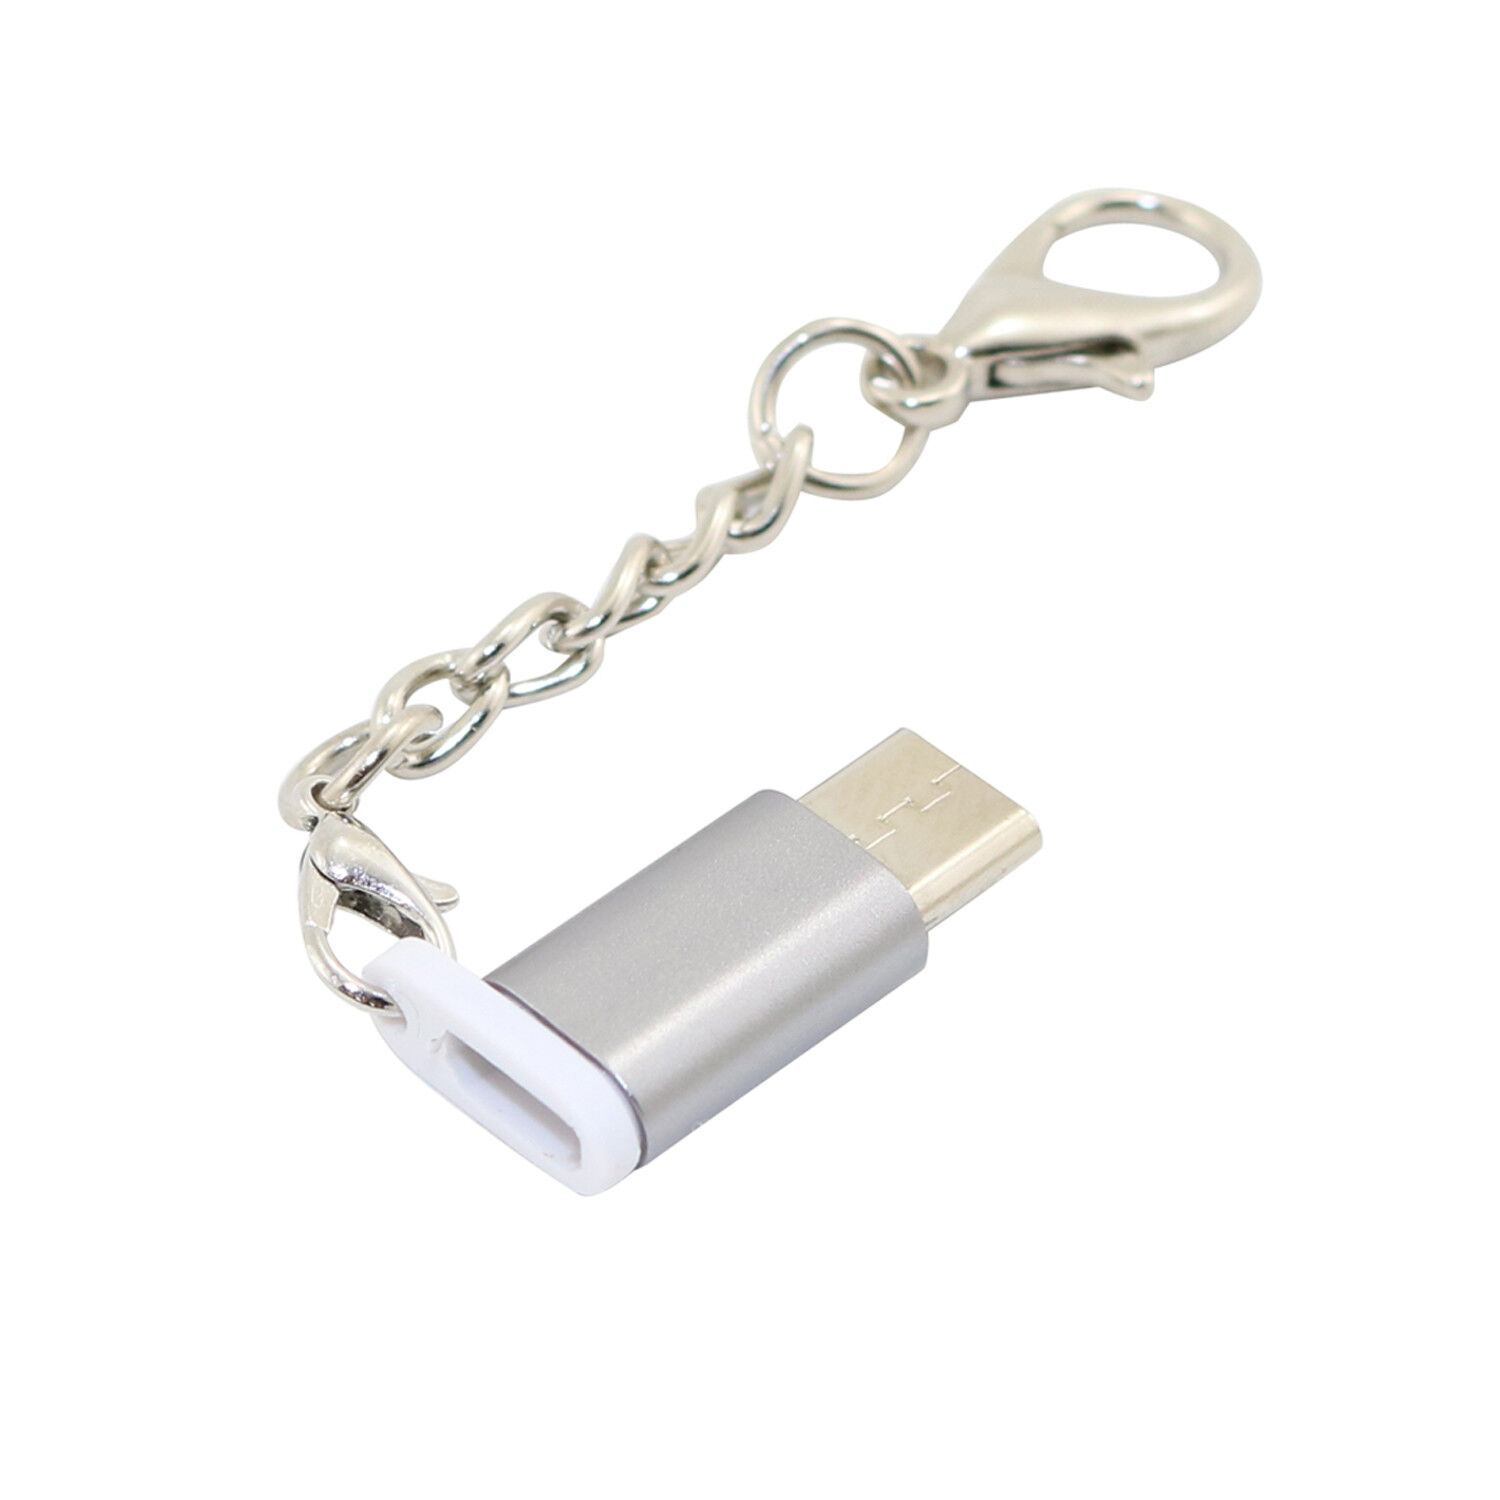 USB C to Micro USB Adapter with Keychain Type C Convert for